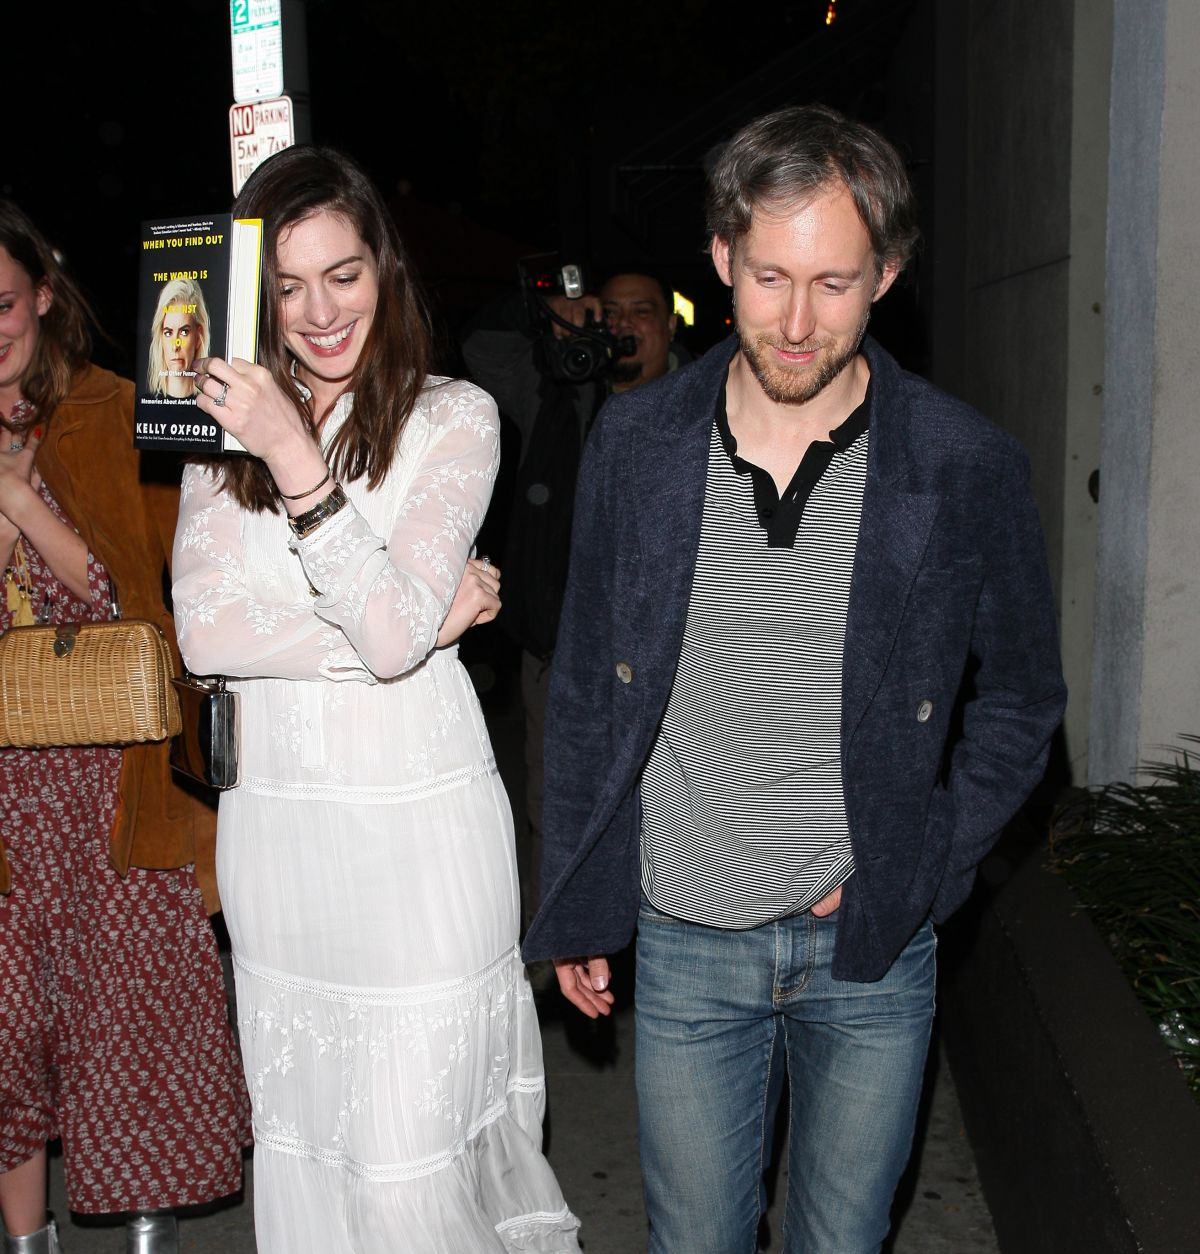 Anne Hathaway And Husband Wedding: ANNE HATHAWAY And Adam Shulman Leaves Craig's Restaurant